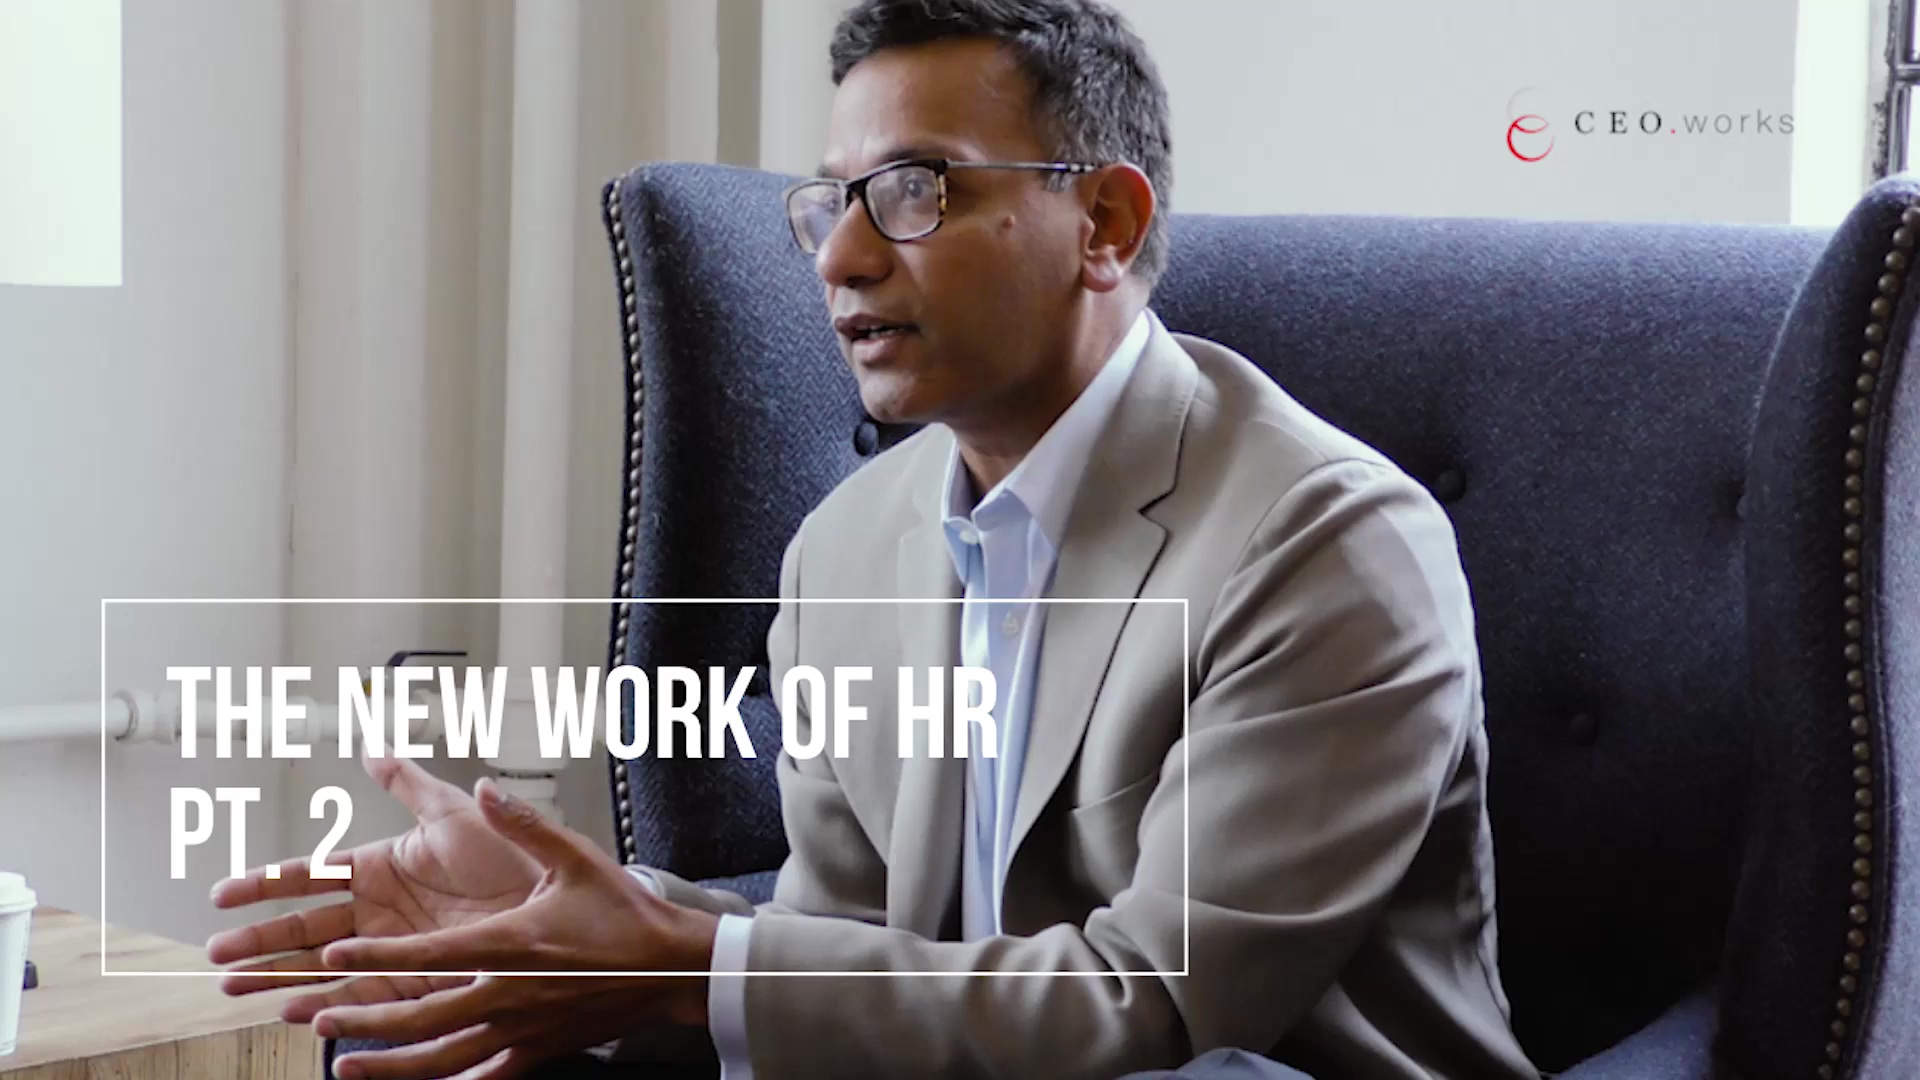 THE NEW WORK OF HR PART 2